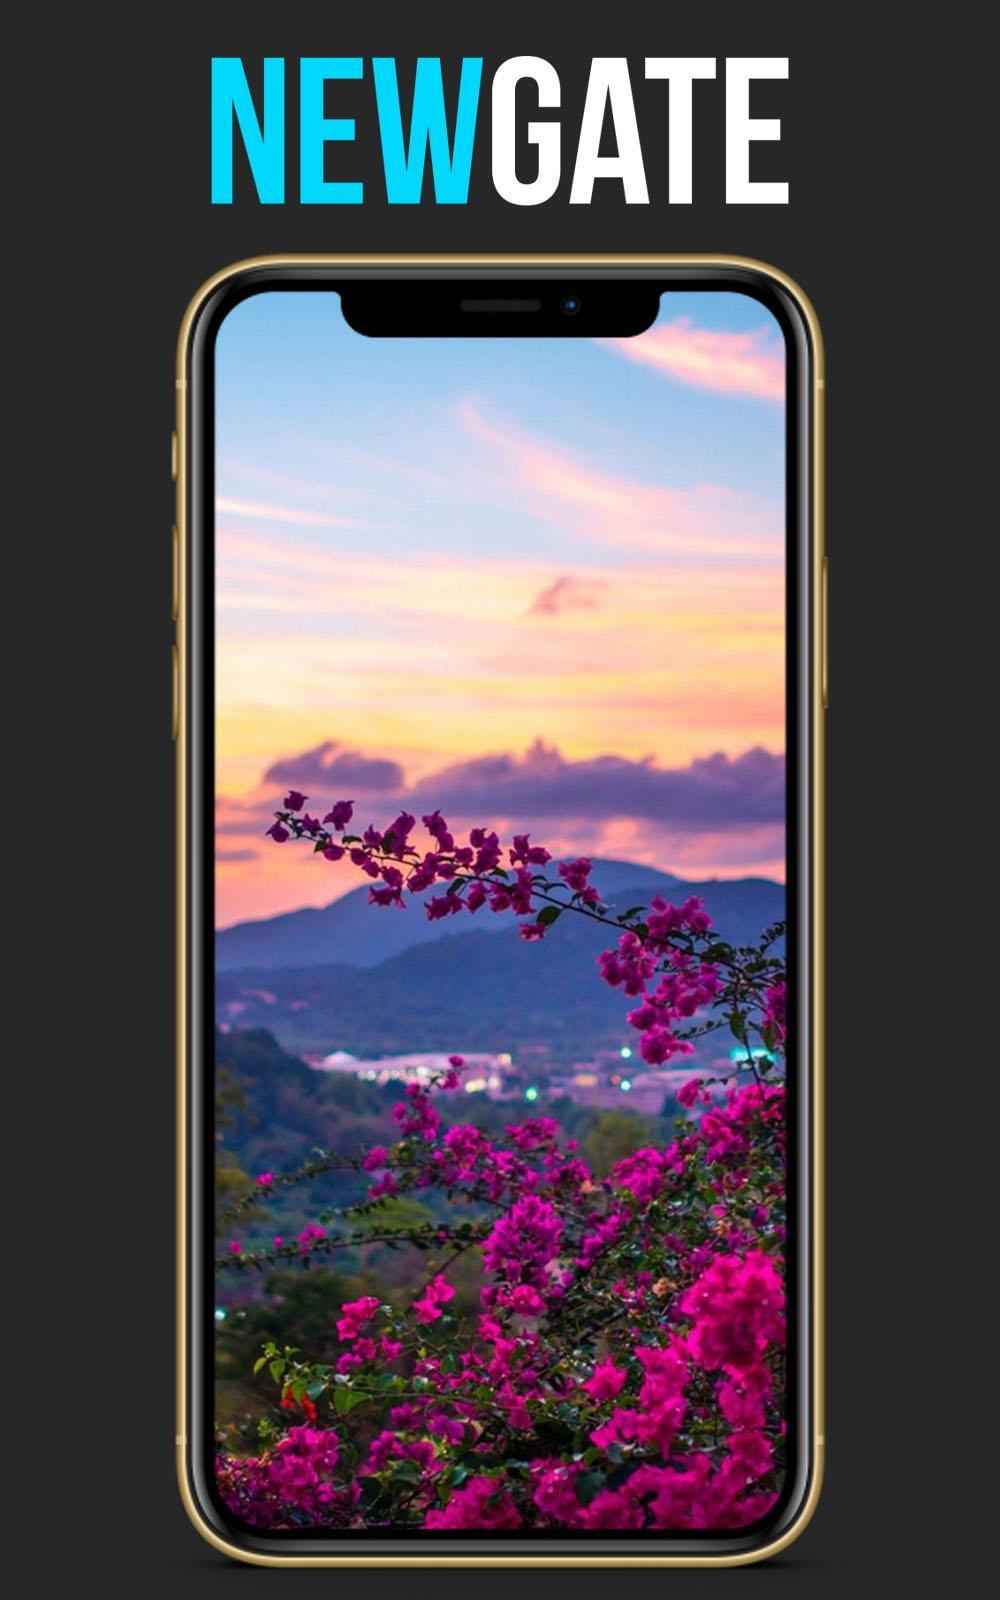 Nature Wallpaper 3d 2020 New Hd 4k For Android Apk Download Live wallpaper app for android. apkpure com